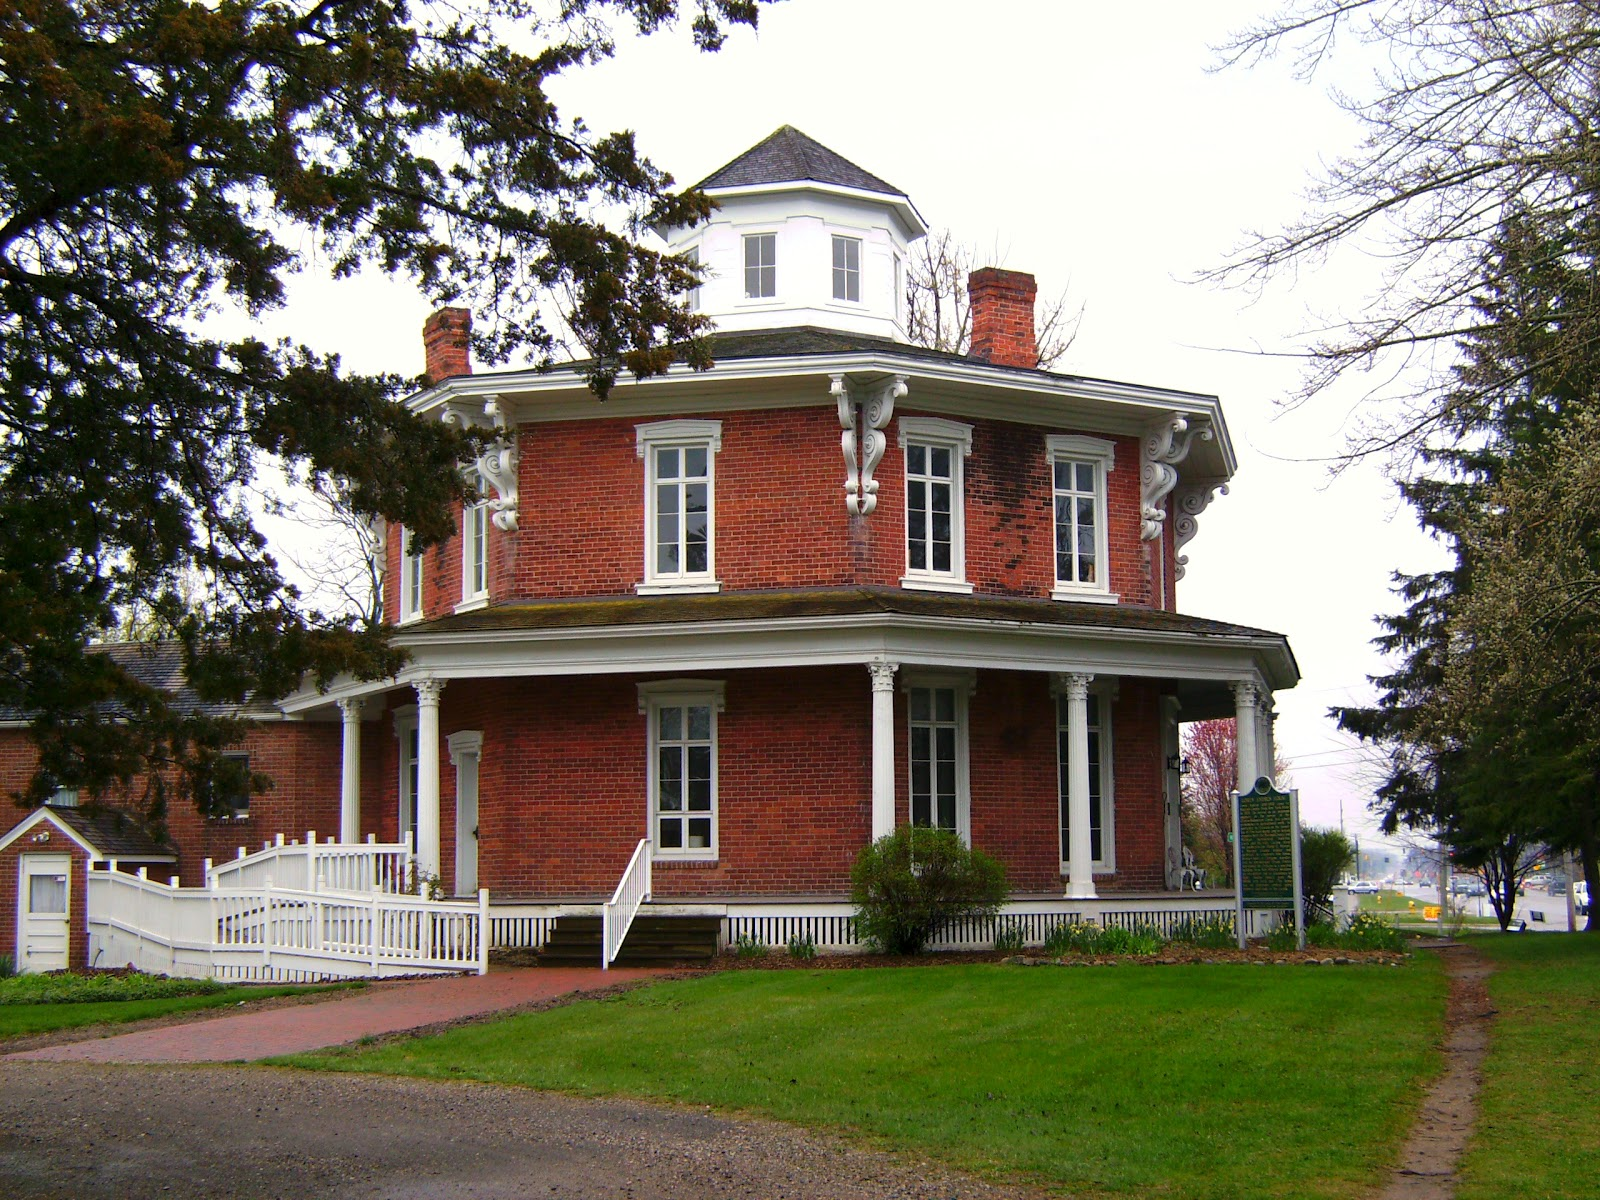 Relevant tea leaf the octagon house for Building a house in washington state